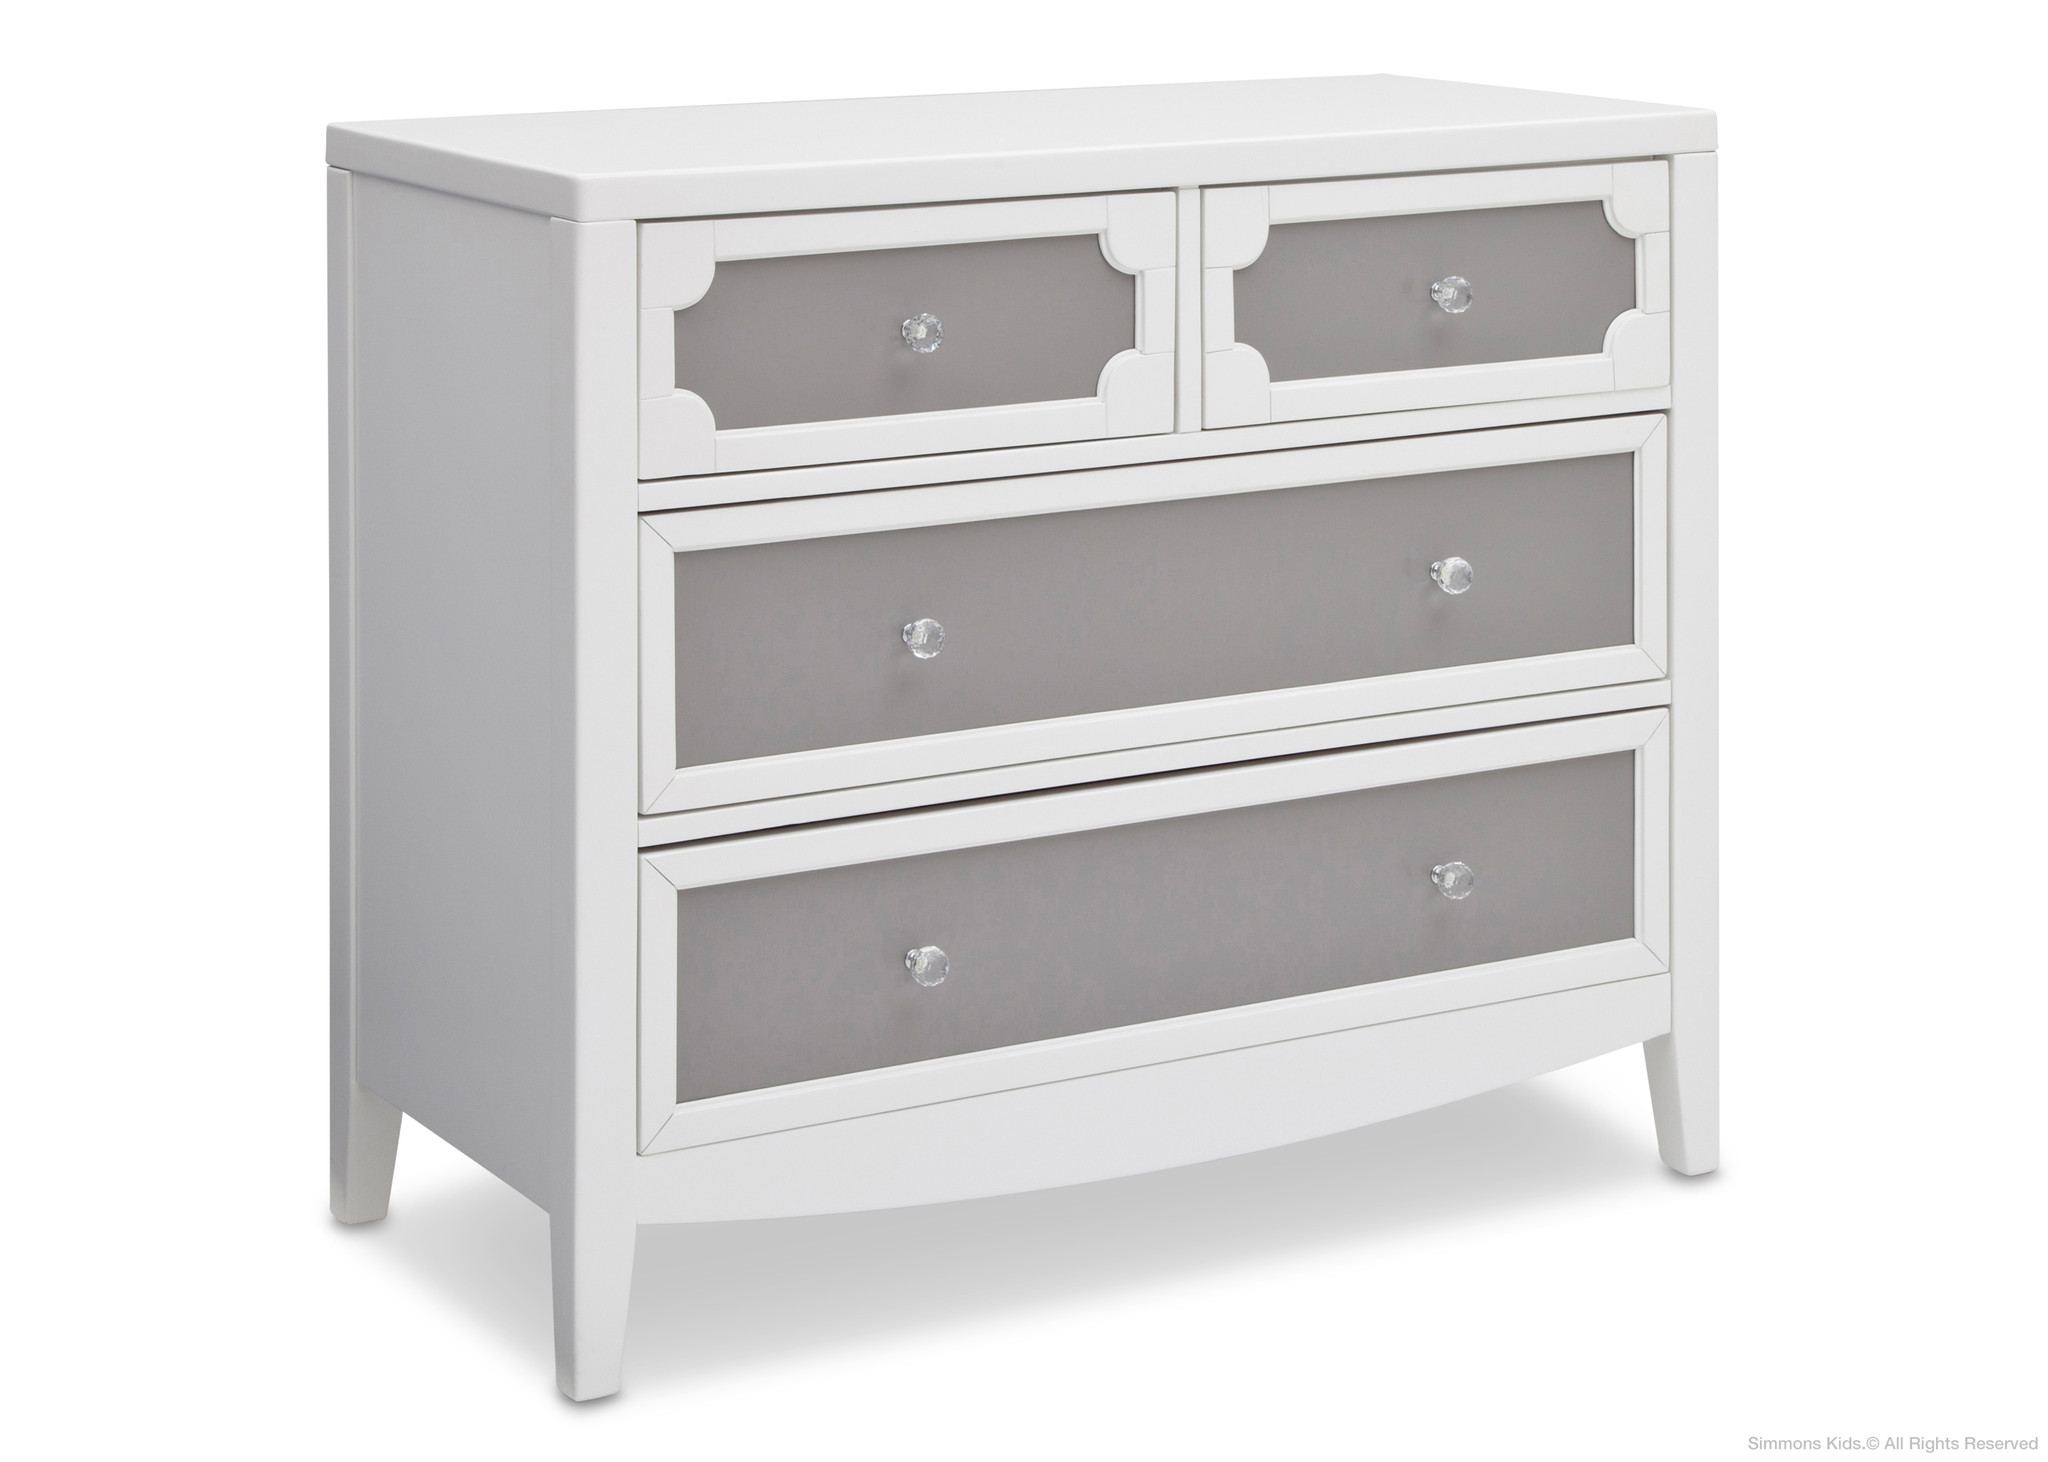 Unique Furniture Design Cabinet with 4 Drawer Dresser for Bedroom Ideas: Wondrous 4 Drawer Dresser White And Gray Color Combine